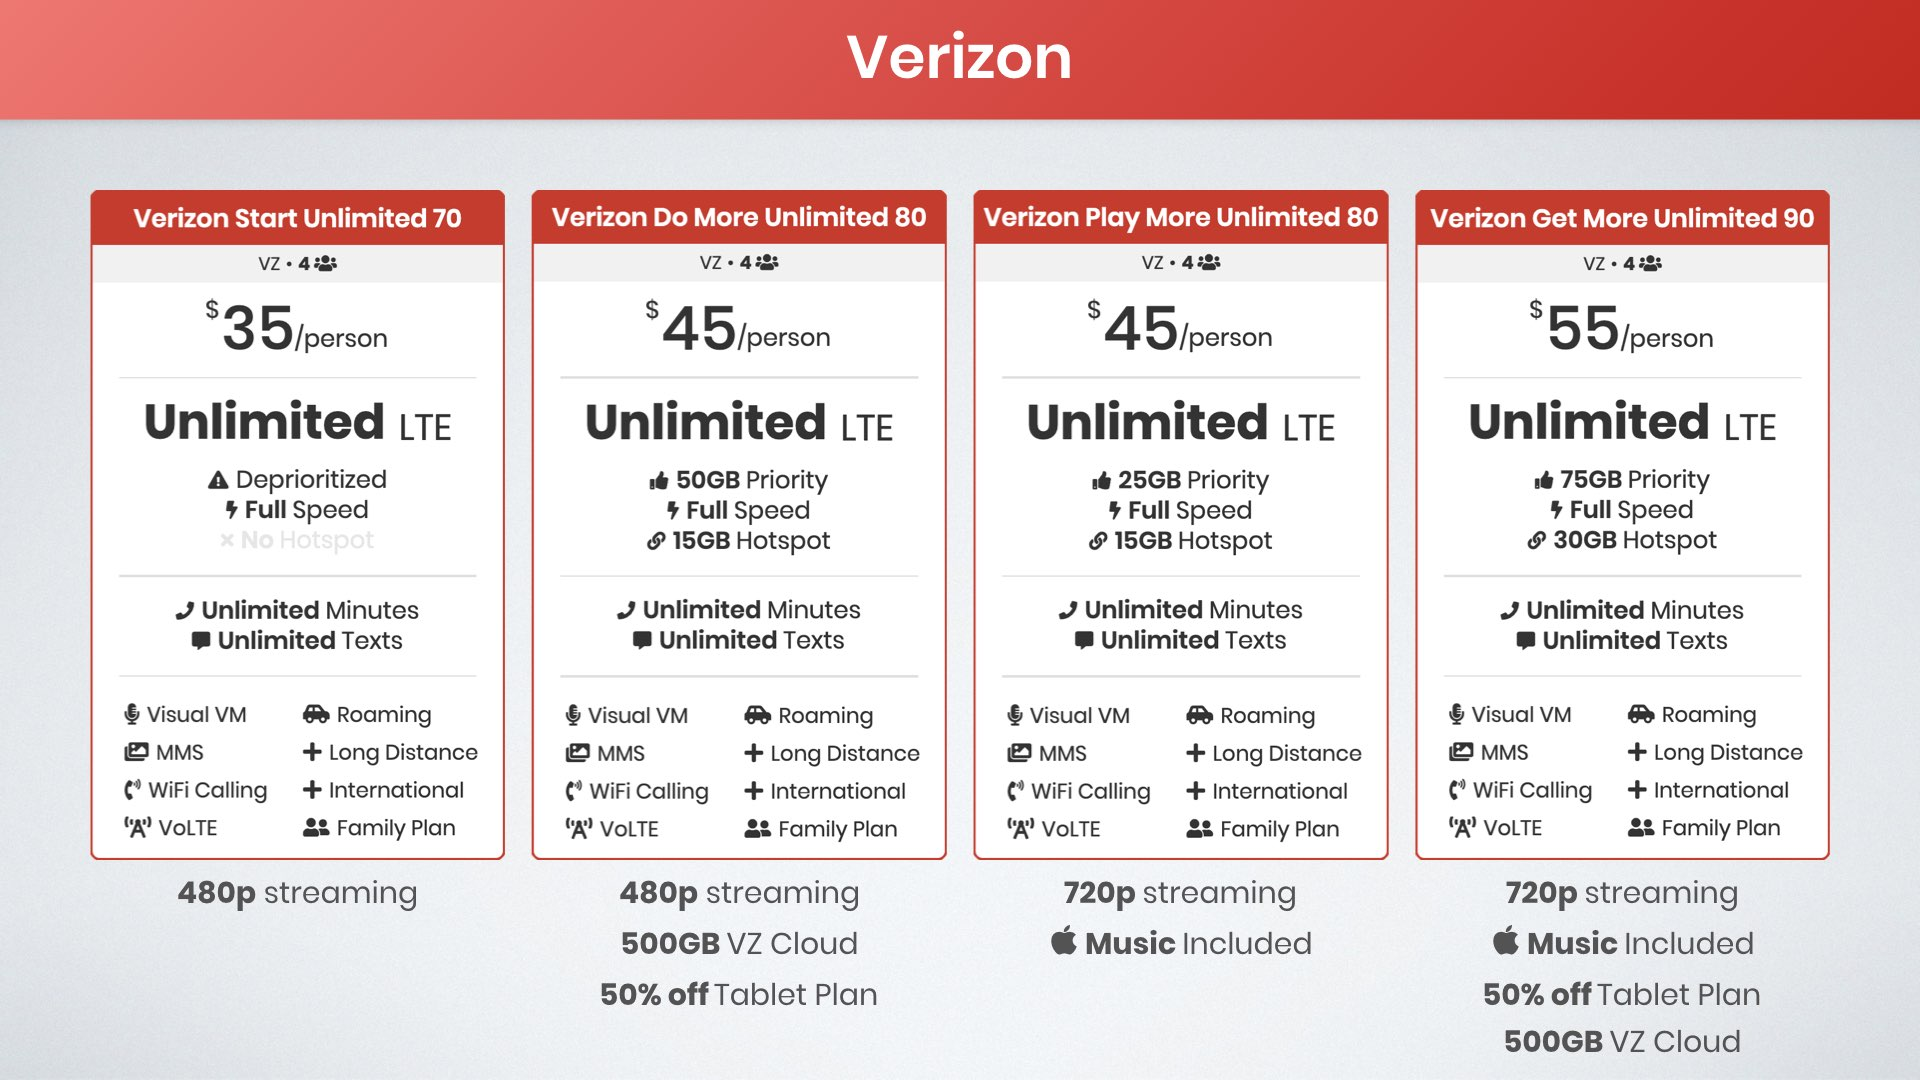 graphic of Verizon Start Unlimited plan vs Verizon Do More Unlimited Plan vs Verizon Play More Unlimited Plan vs Verizon Get More Unlimited Plan